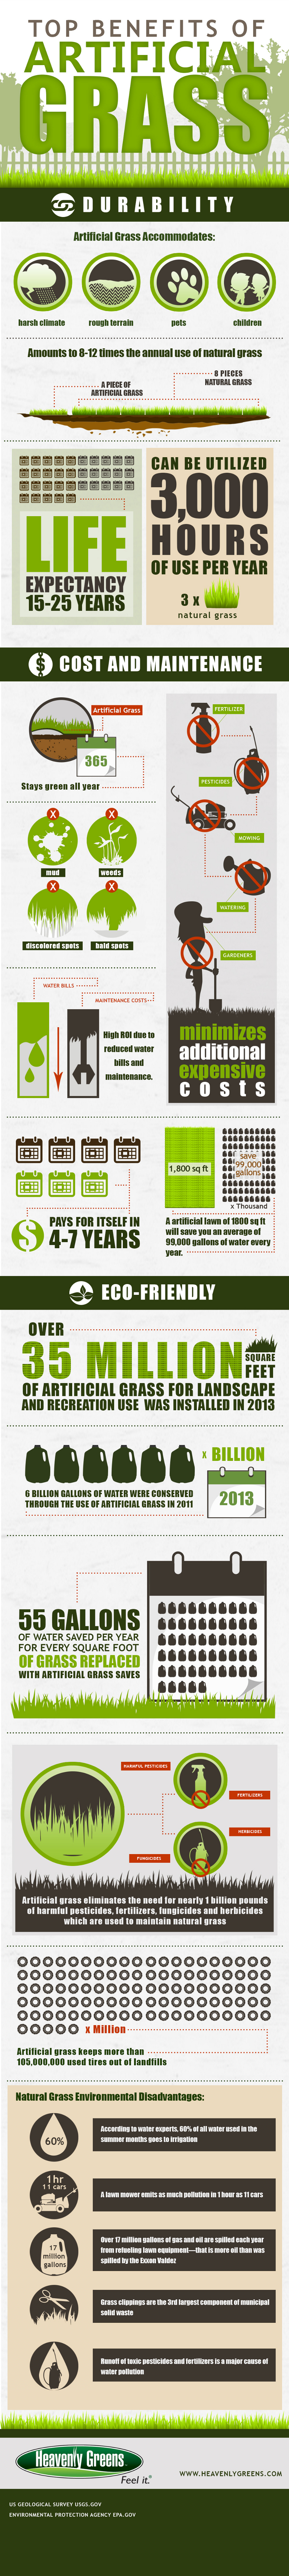 Benefits of Artificial Grass